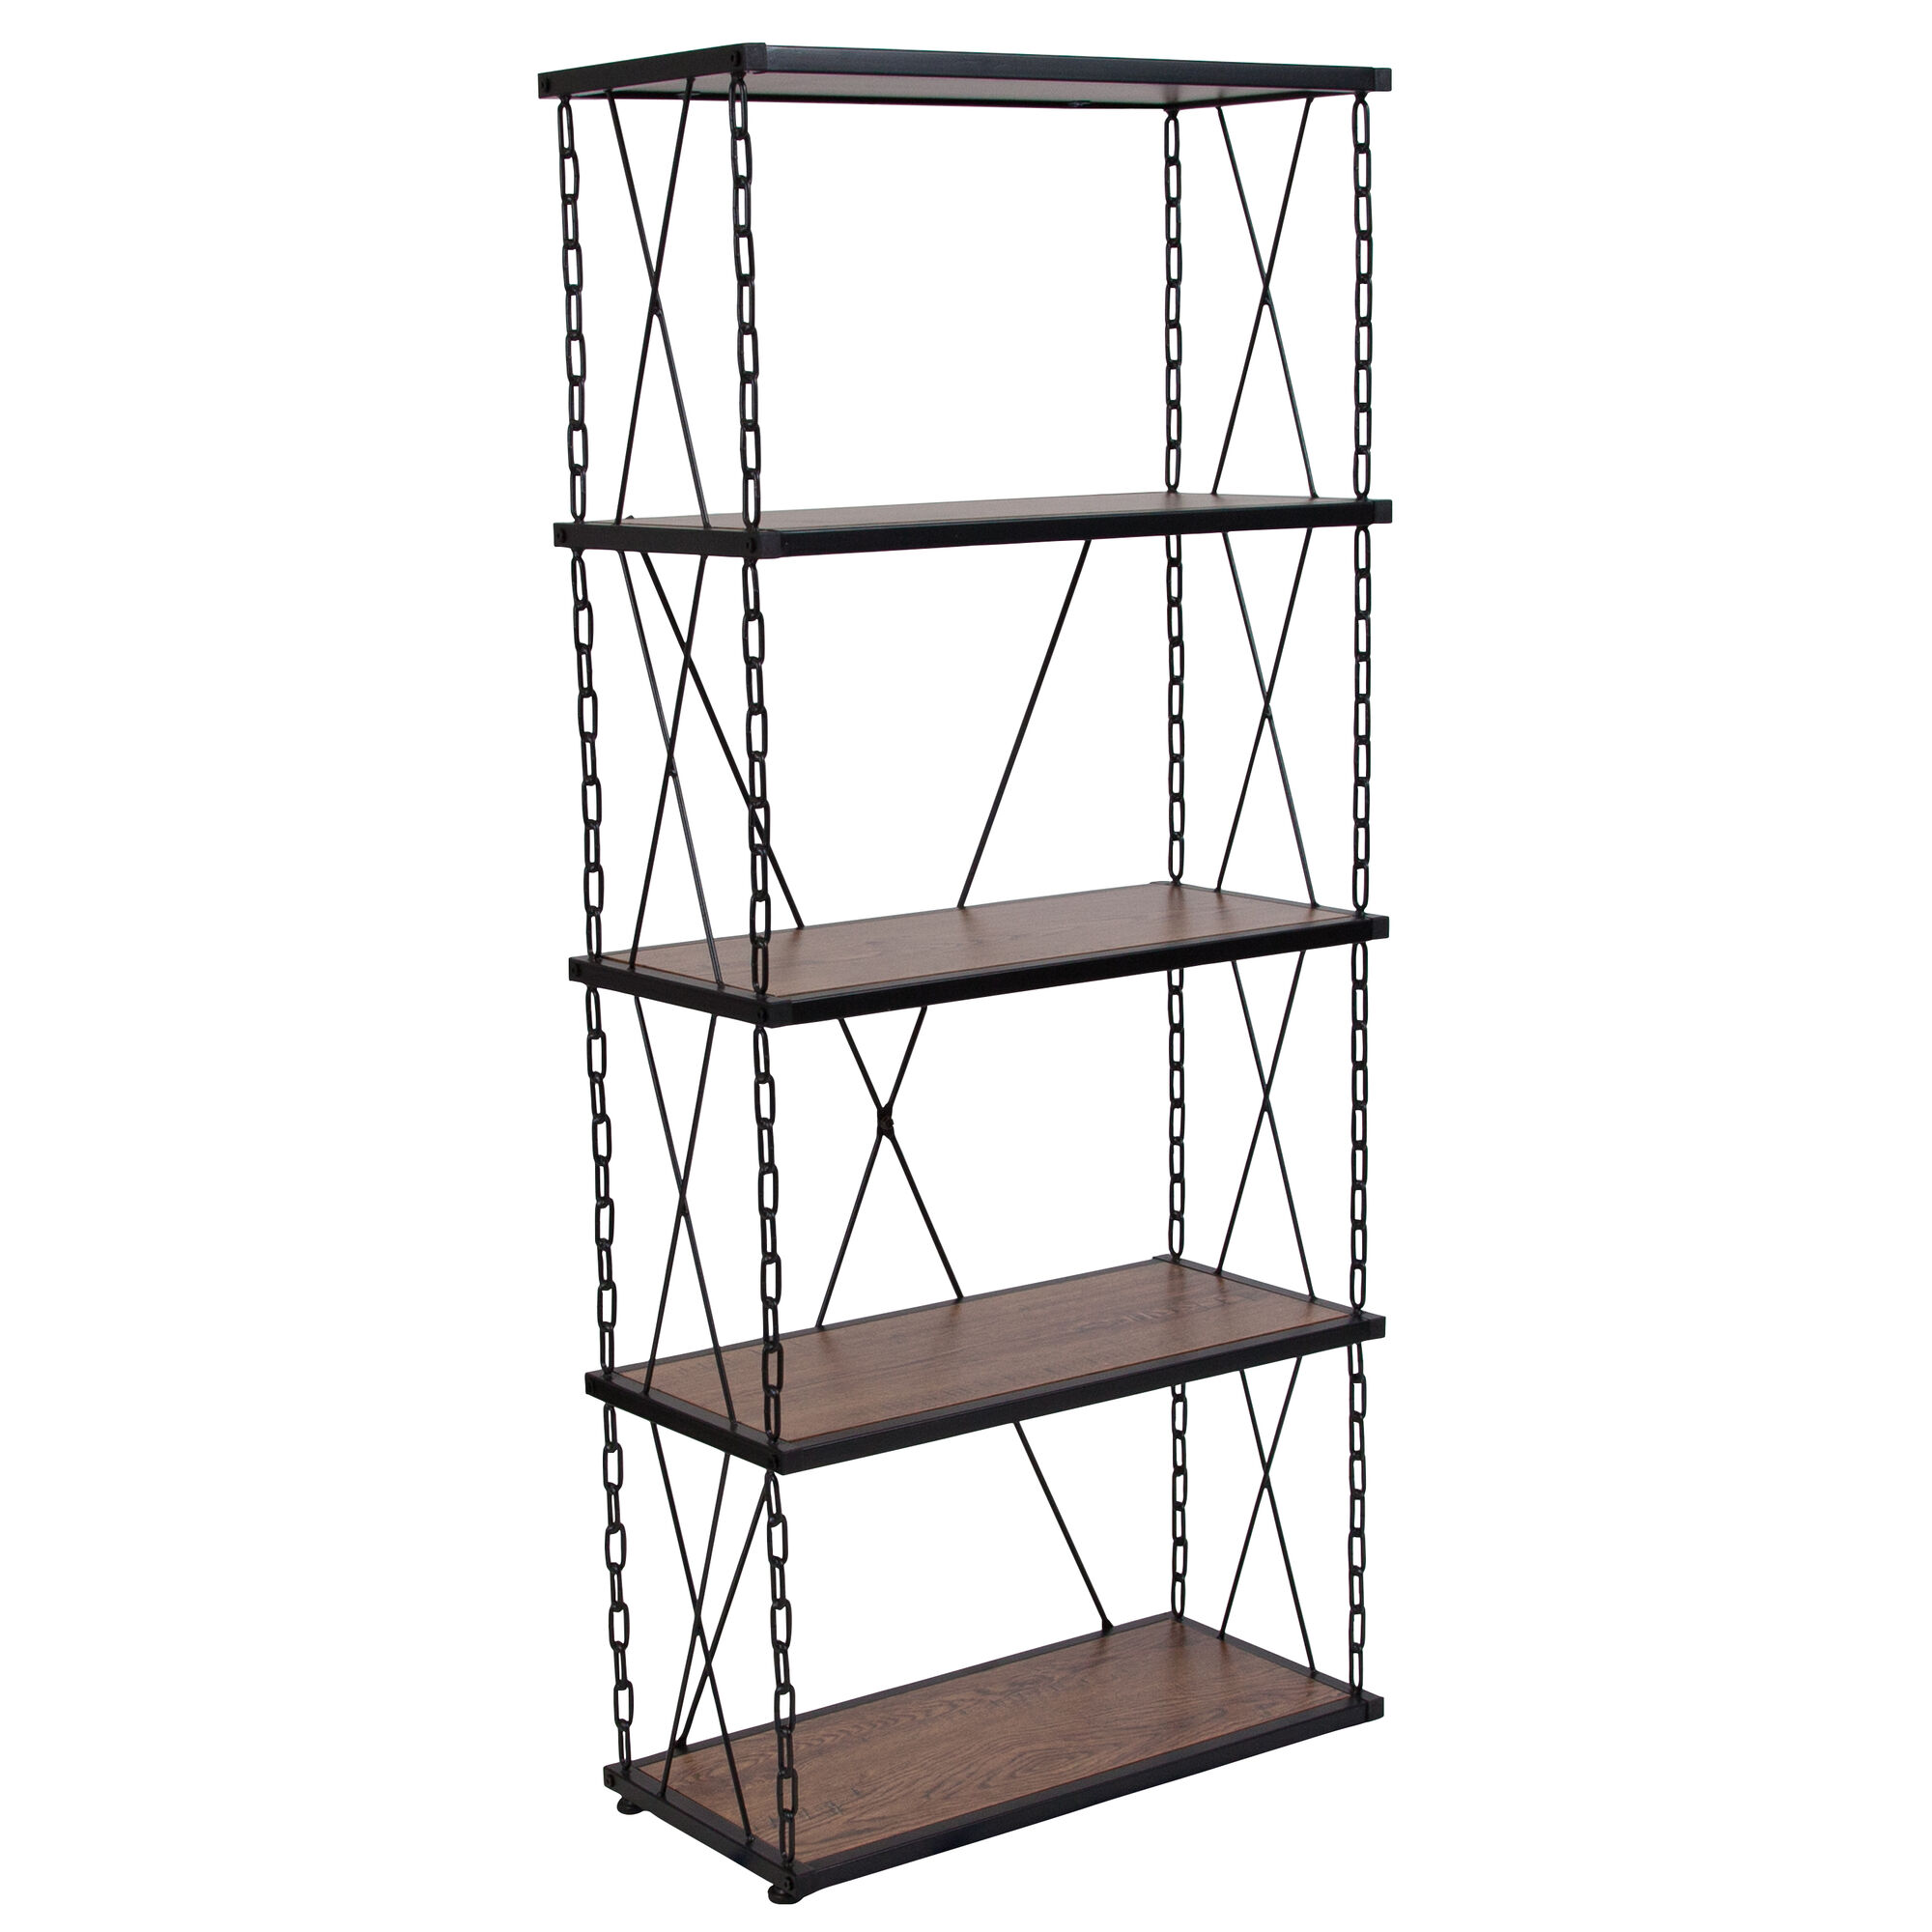 Vernon Hills Collection 4 Shelf 57 H Chain Accent Metal Frame Bookcase In Antique Wood Grain Finish